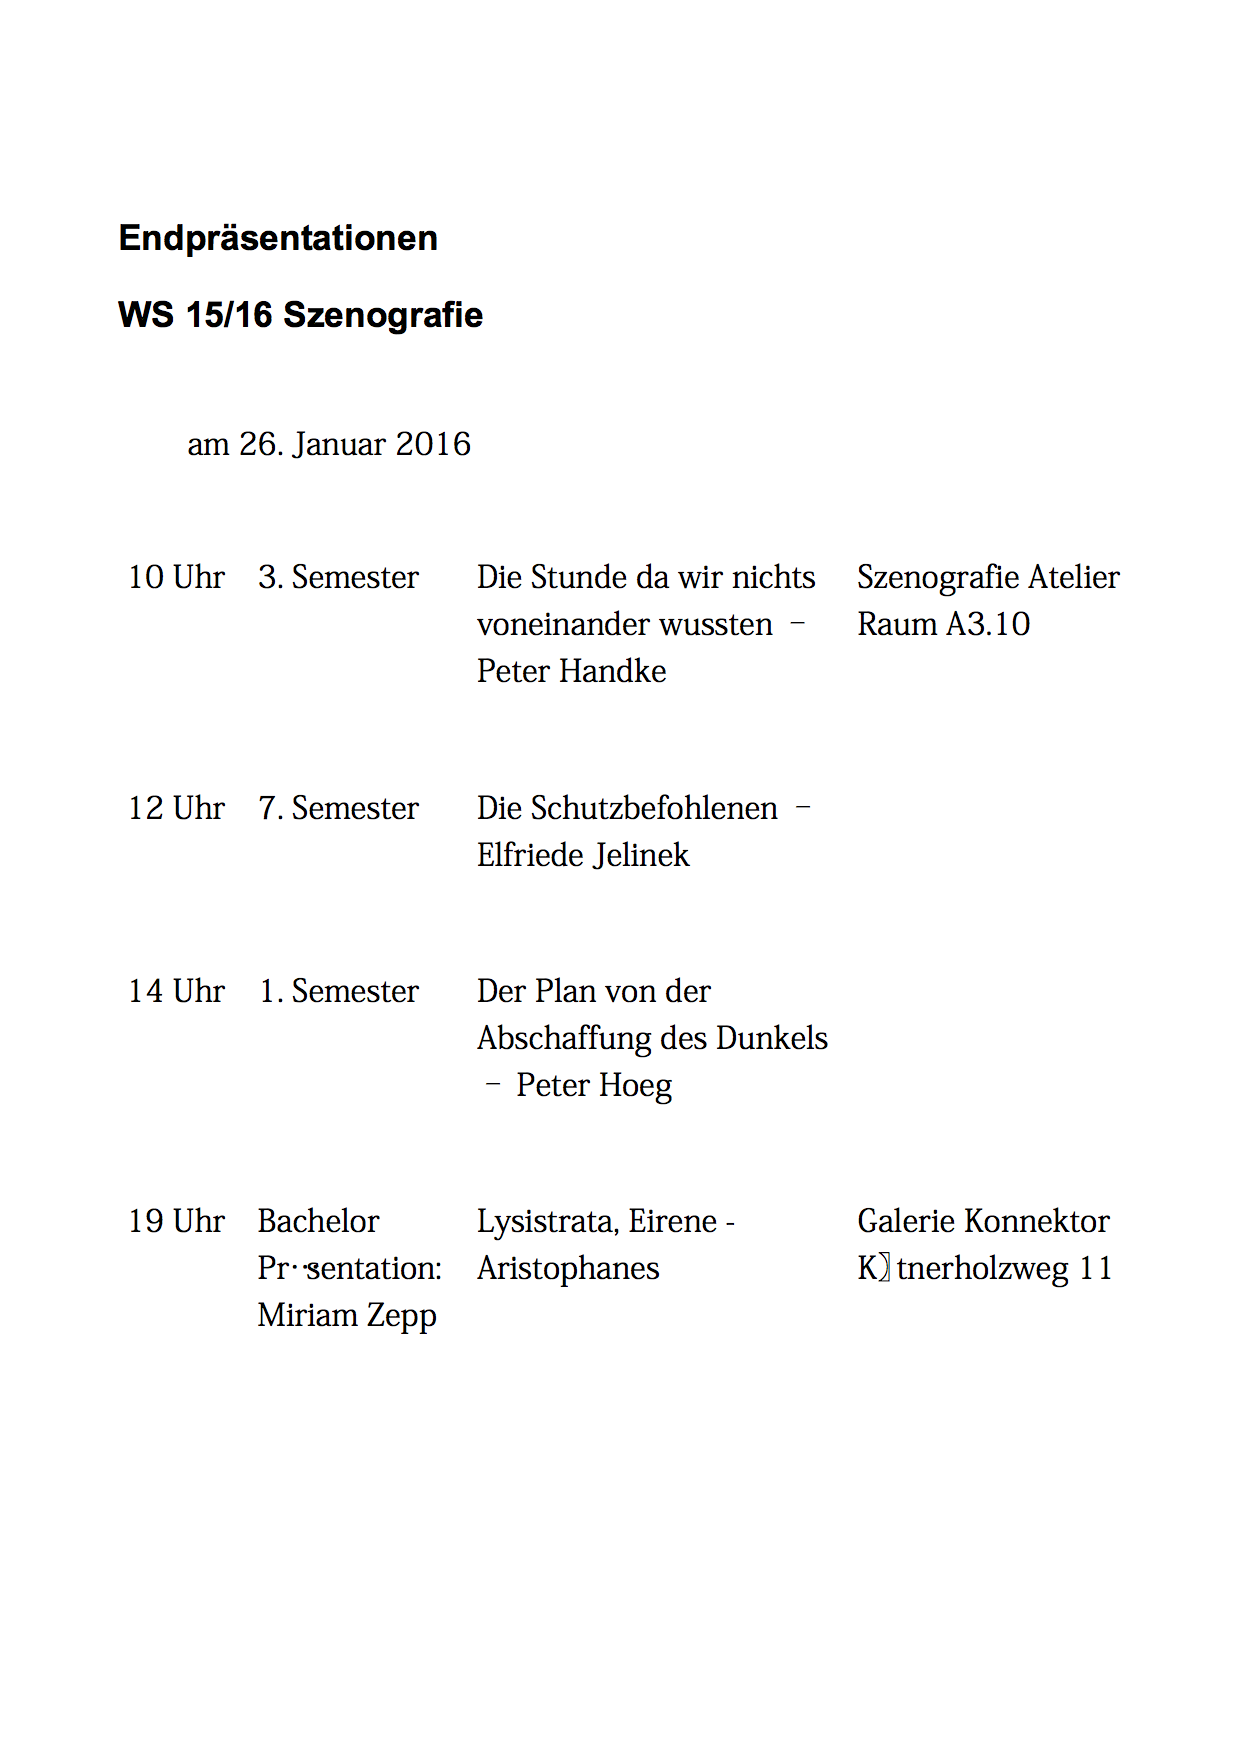 Endpräsentationen WS15:16